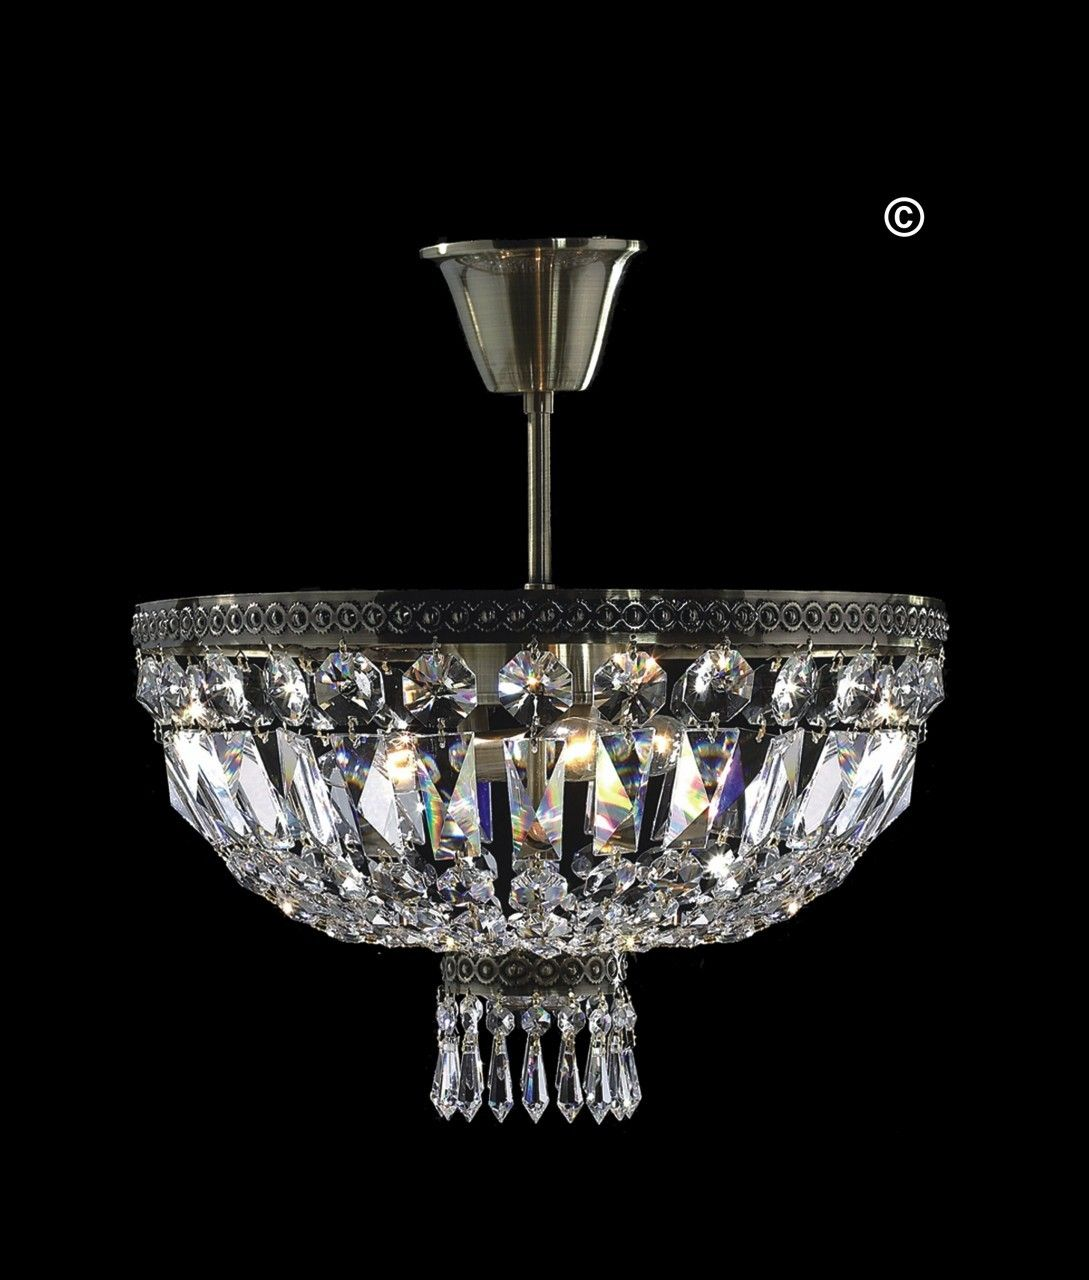 French Basket Crystal Chandelier Direct To Ceiling Flush Mount Anique Bronze Finish 8 Led Lights Available In Swarovski Or Diamond Cut